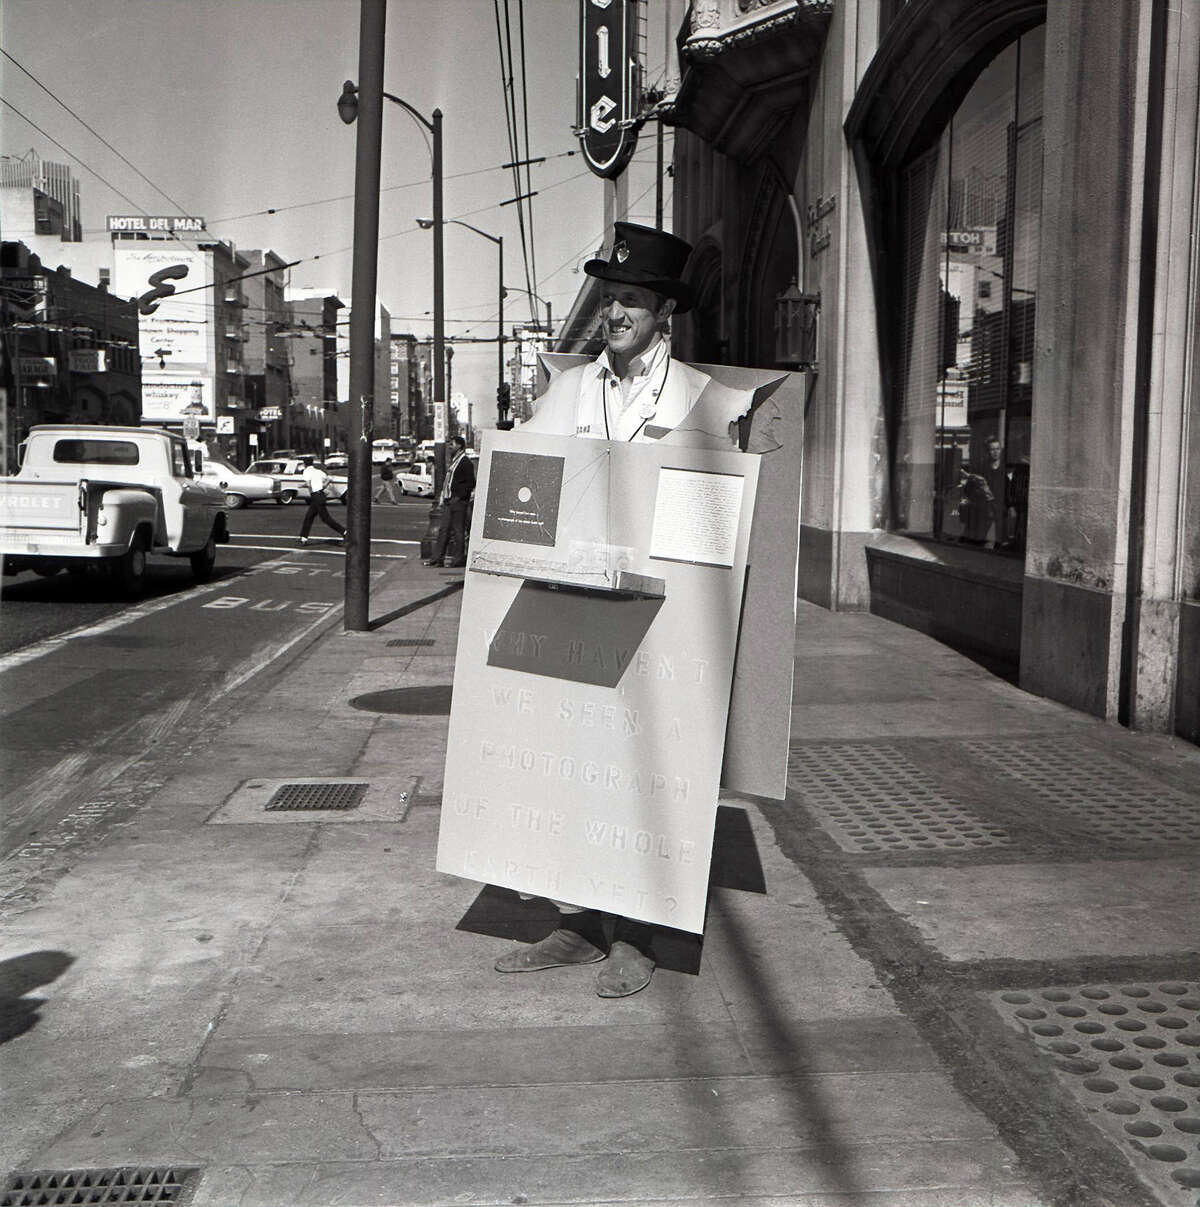 Stewart Brand, author and button salesman in San Francisco. Photo by The Chronicle